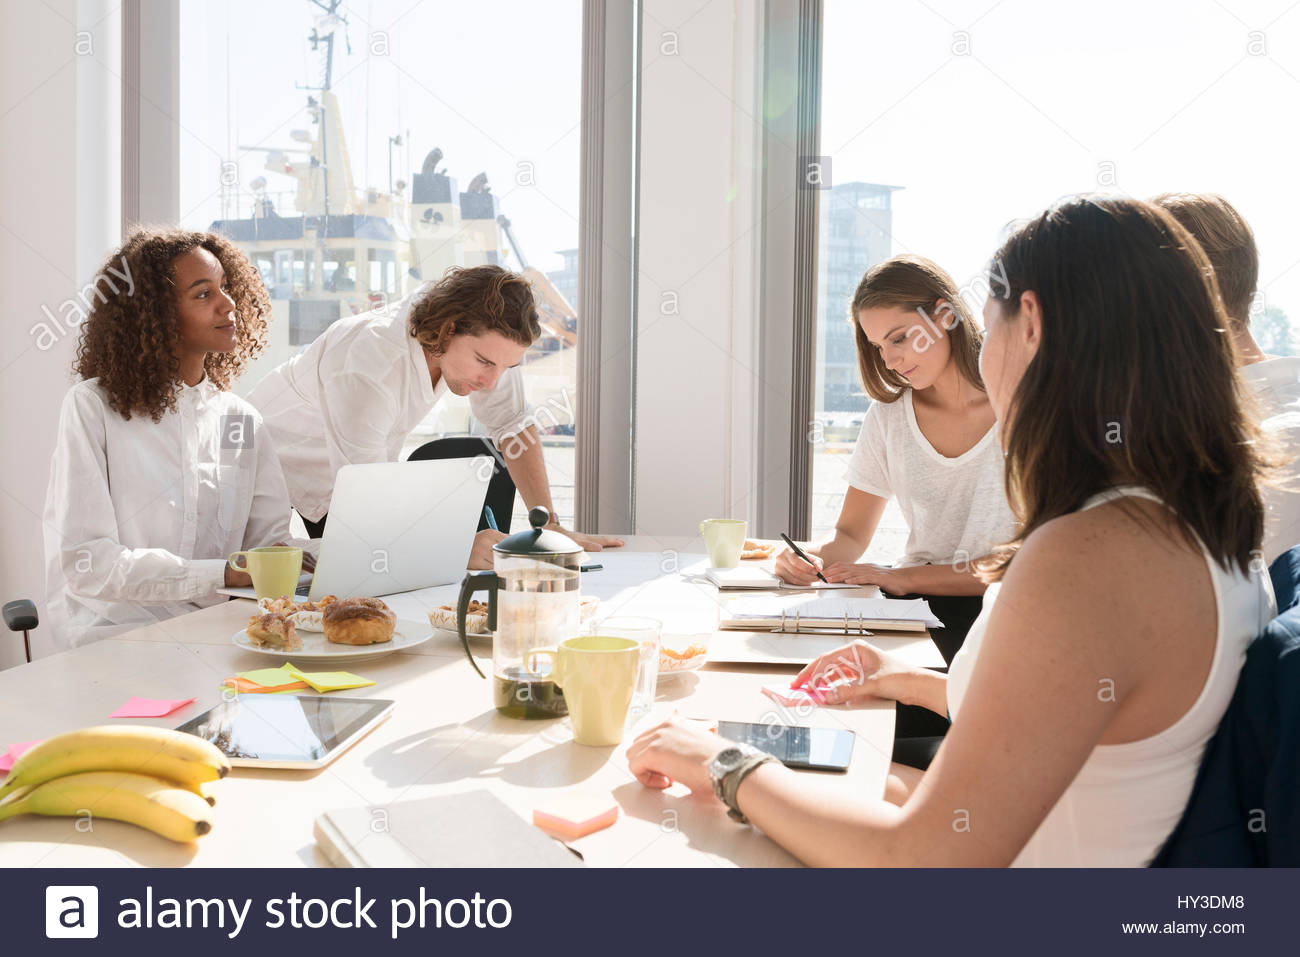 Sweden, Business meeting in office - Stock Image